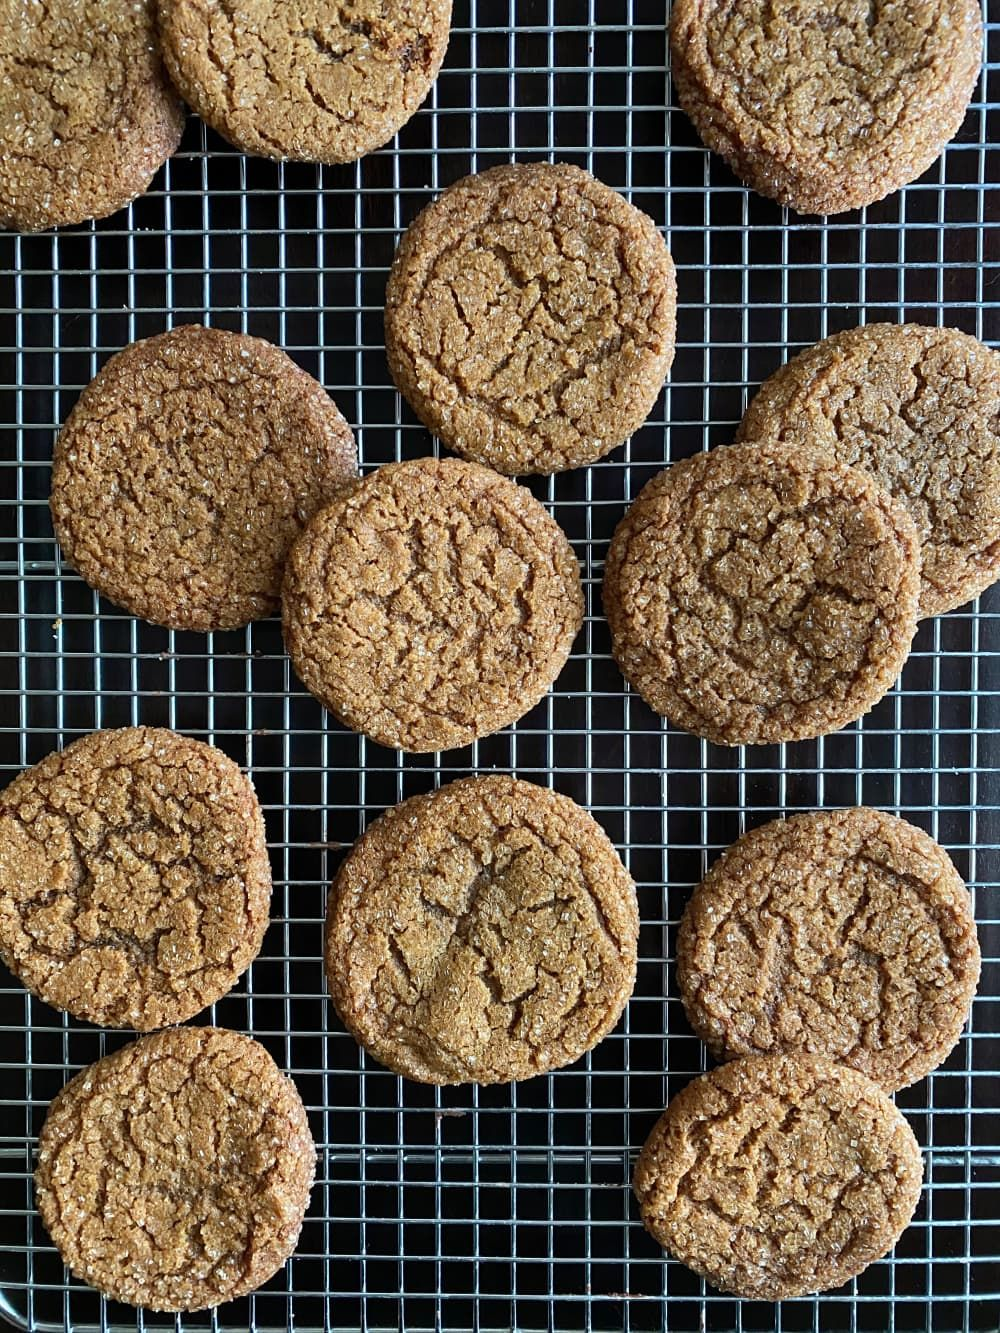 I Tried The 1960s Elevator Lady Spice Cookies Reddit Is Obsessed With In 2020 Spice Cookies Spice Cookie Recipes Easy Cookie Recipes